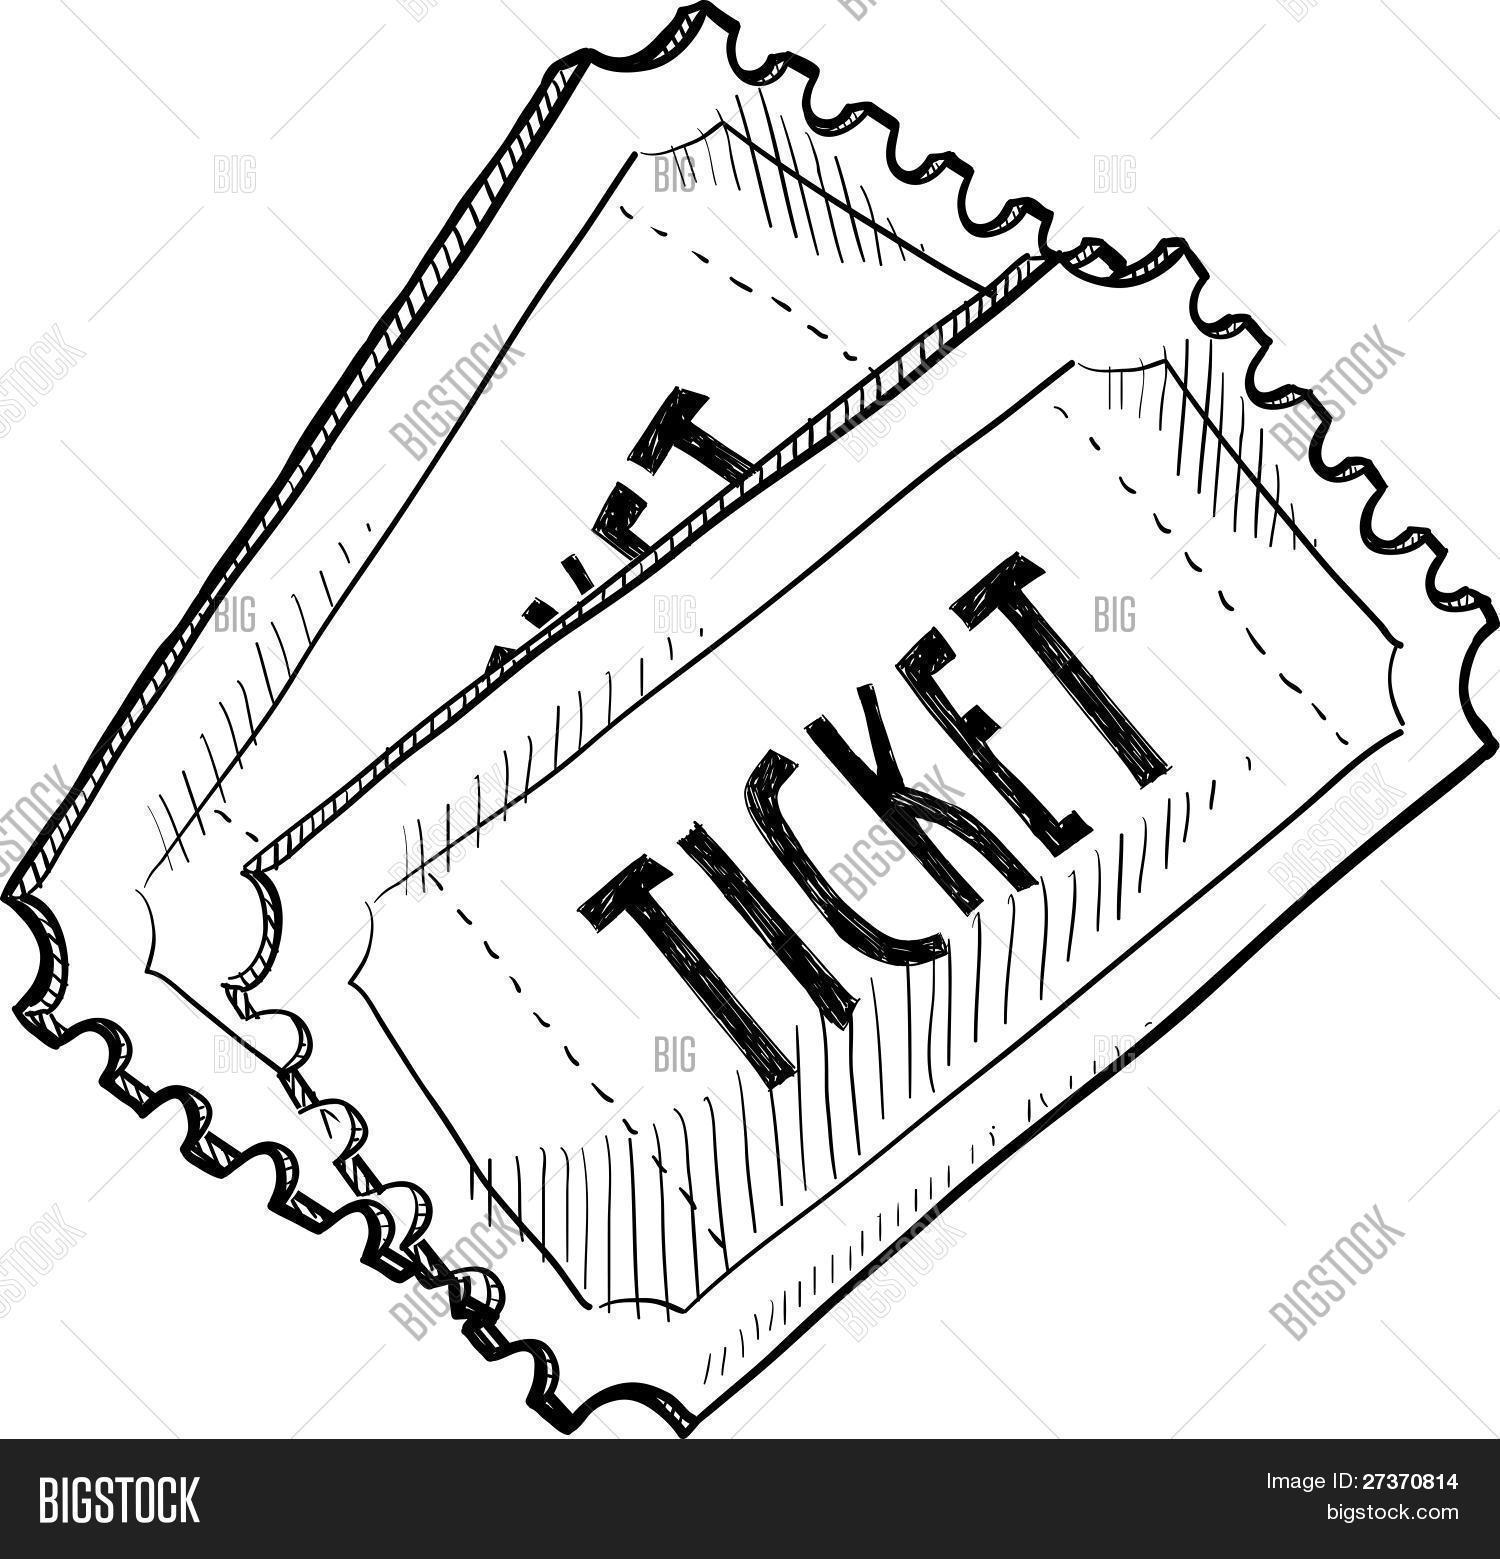 234 Raffle Ticket free clipart.